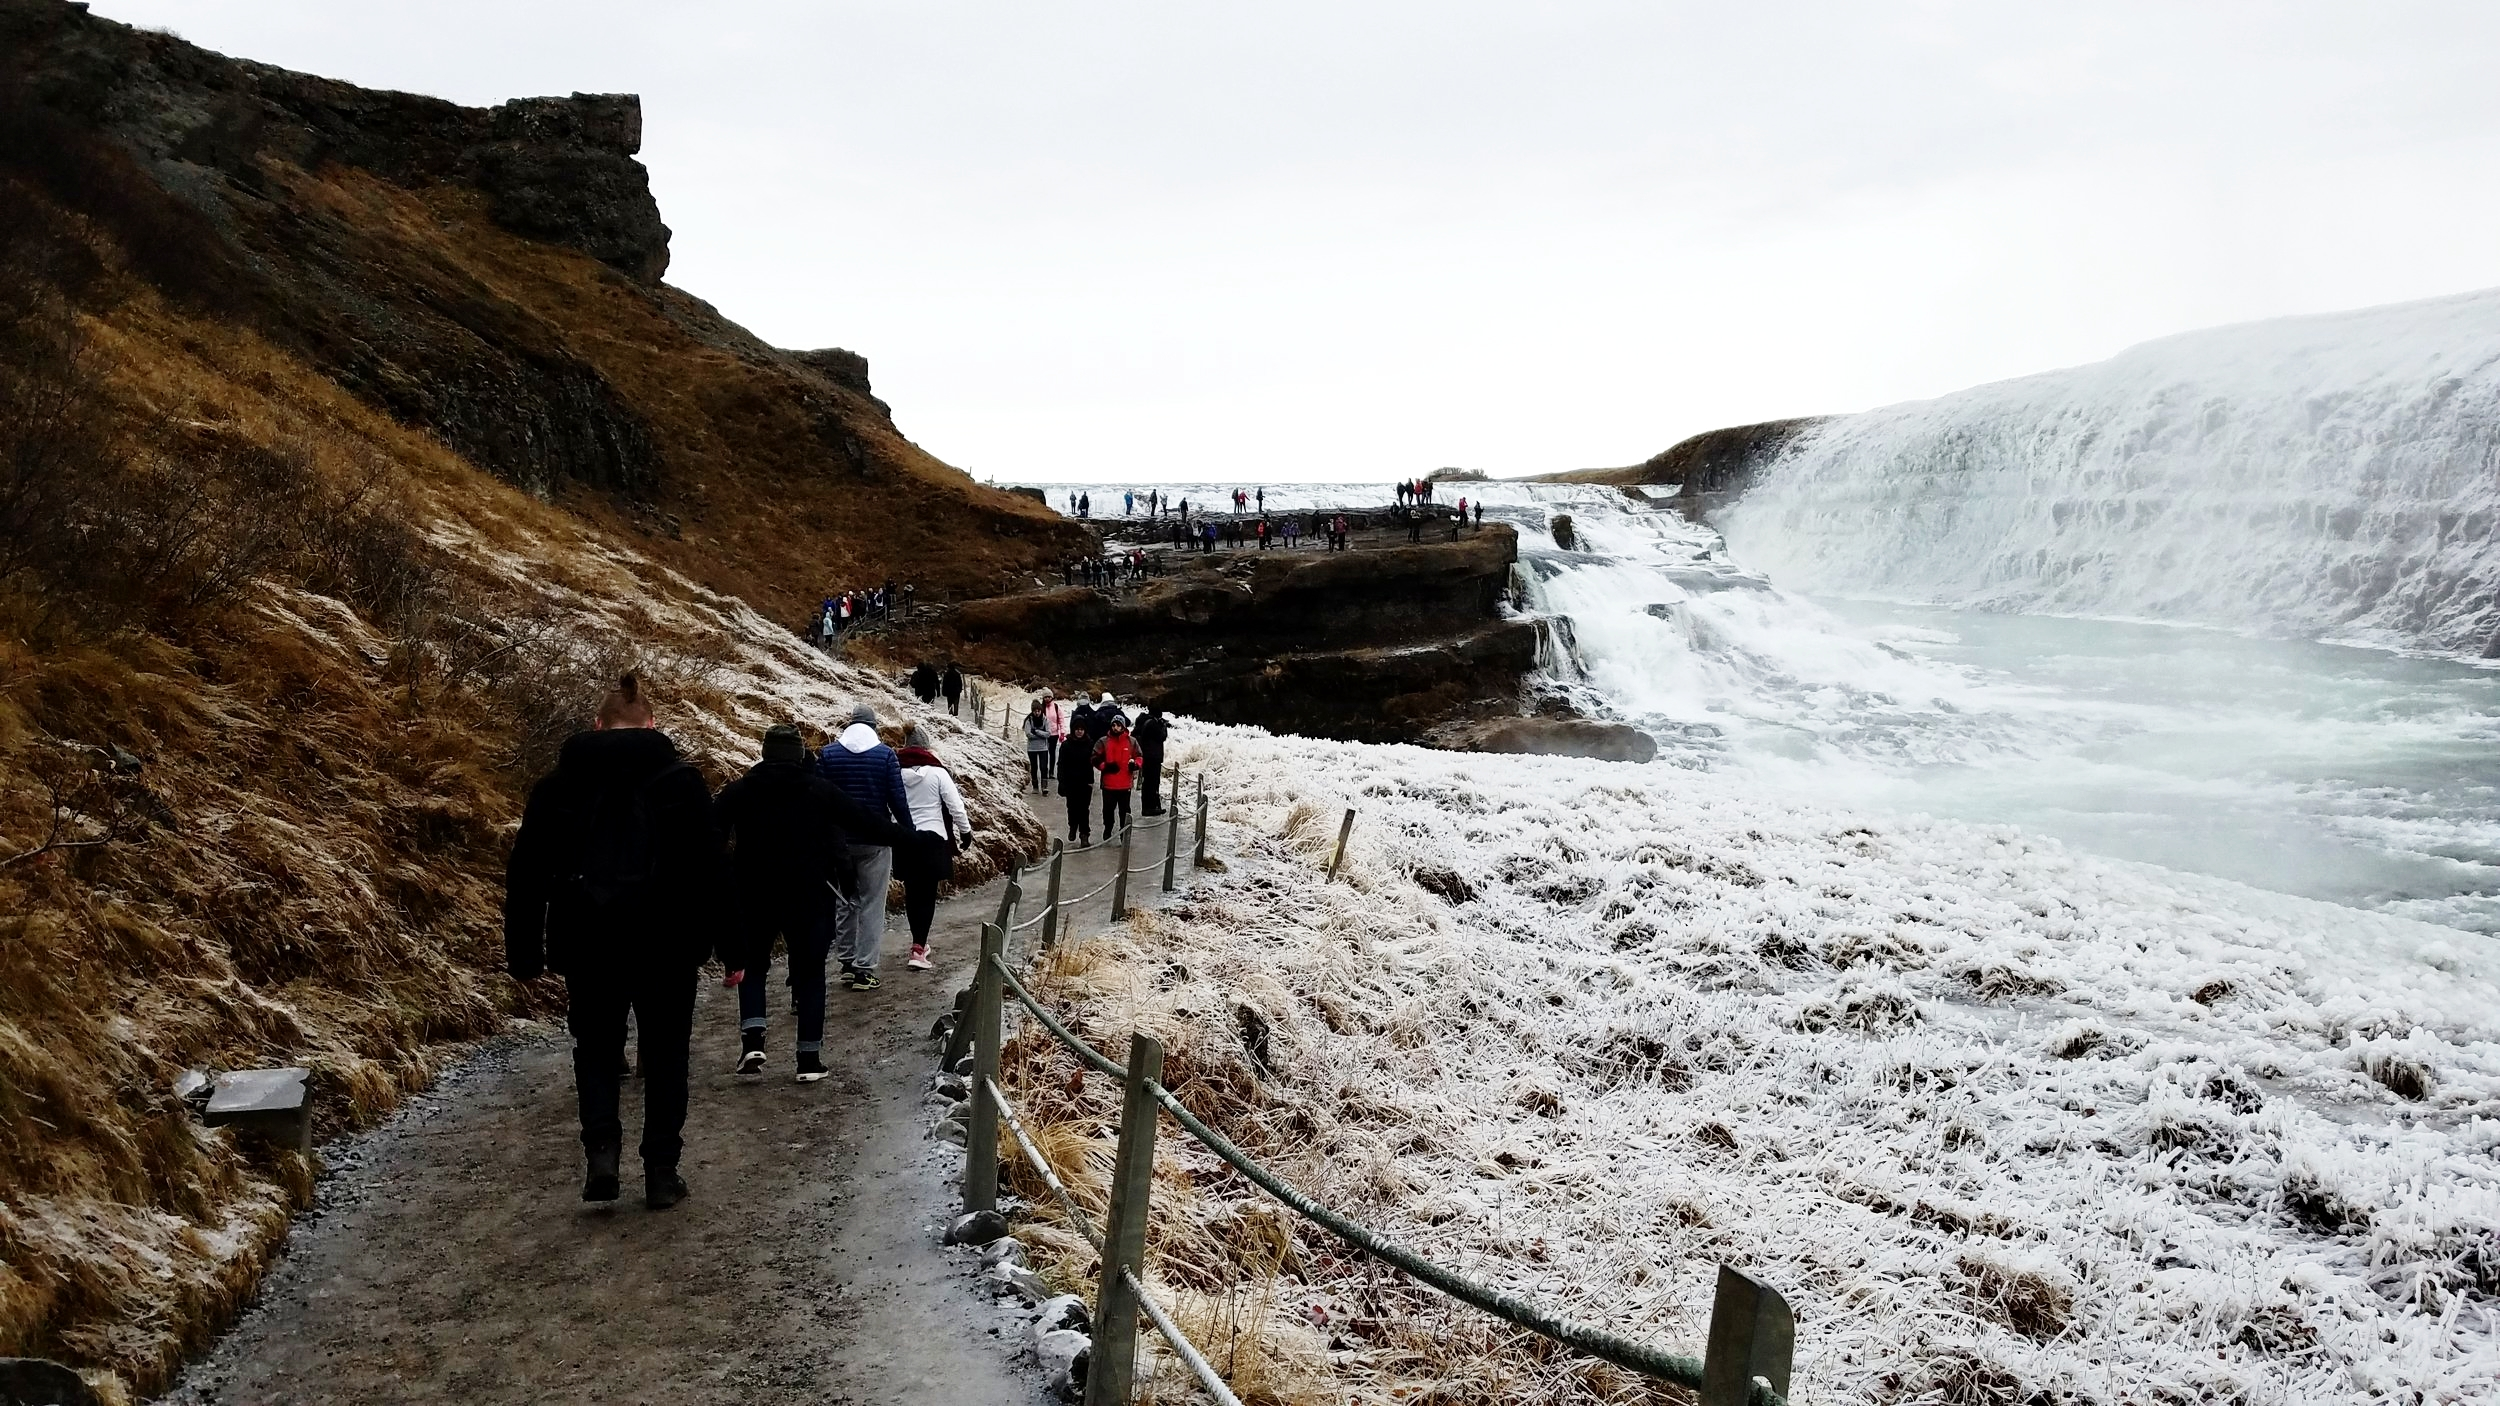 A photo can't quite capture all of the majesty that is Gullfoss